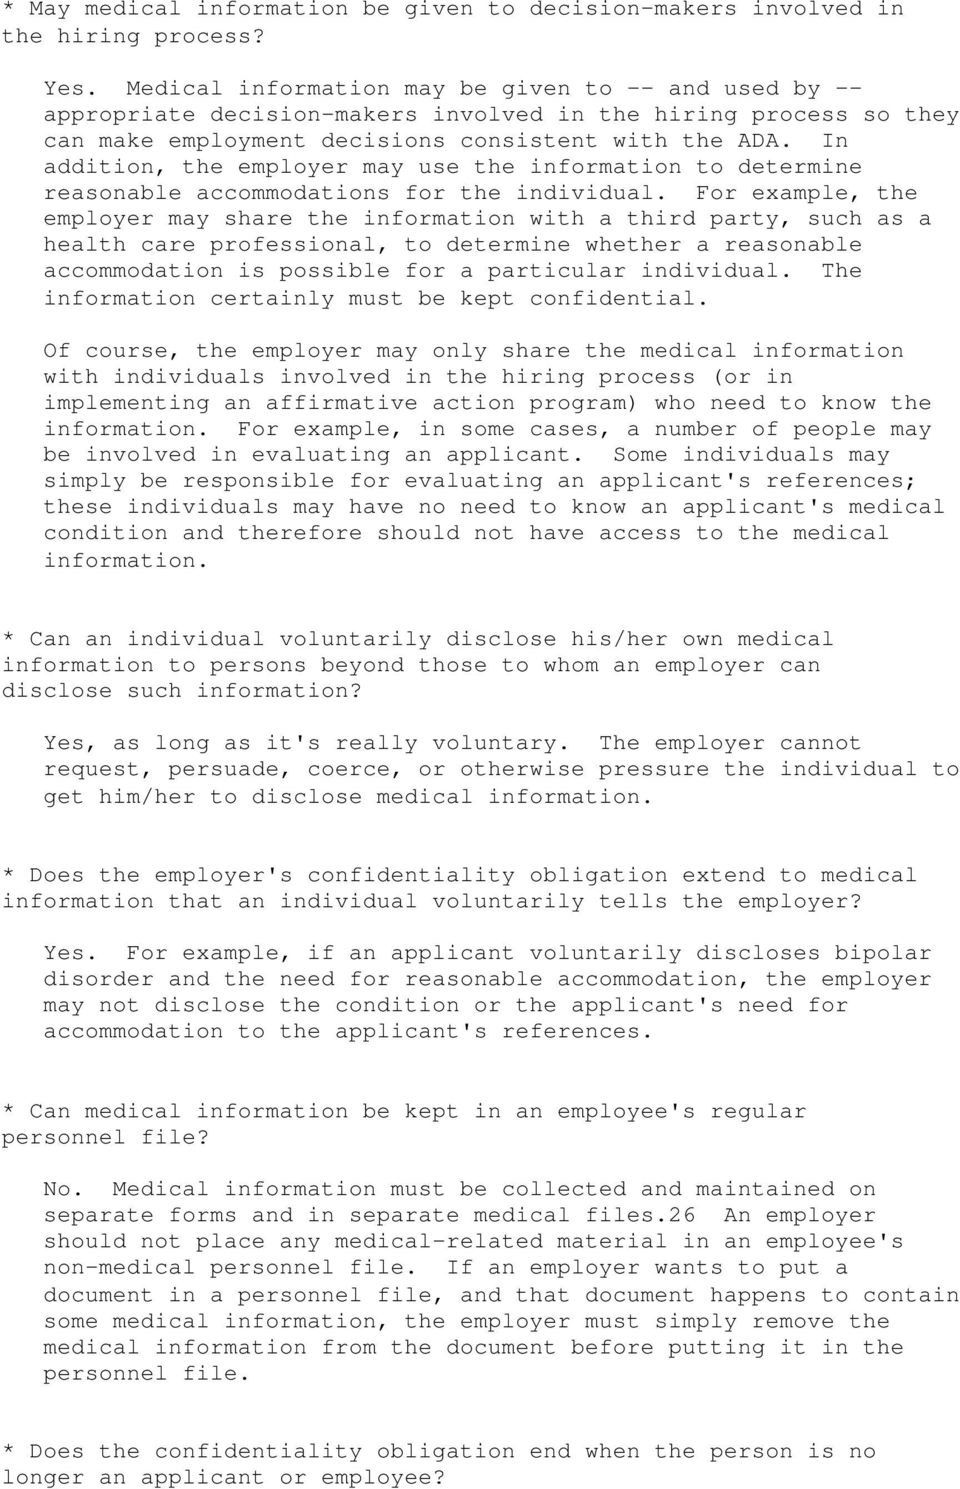 Reasonable Accommodations Extend To >> The U S Equal Employment Opportunity Commission Pdf